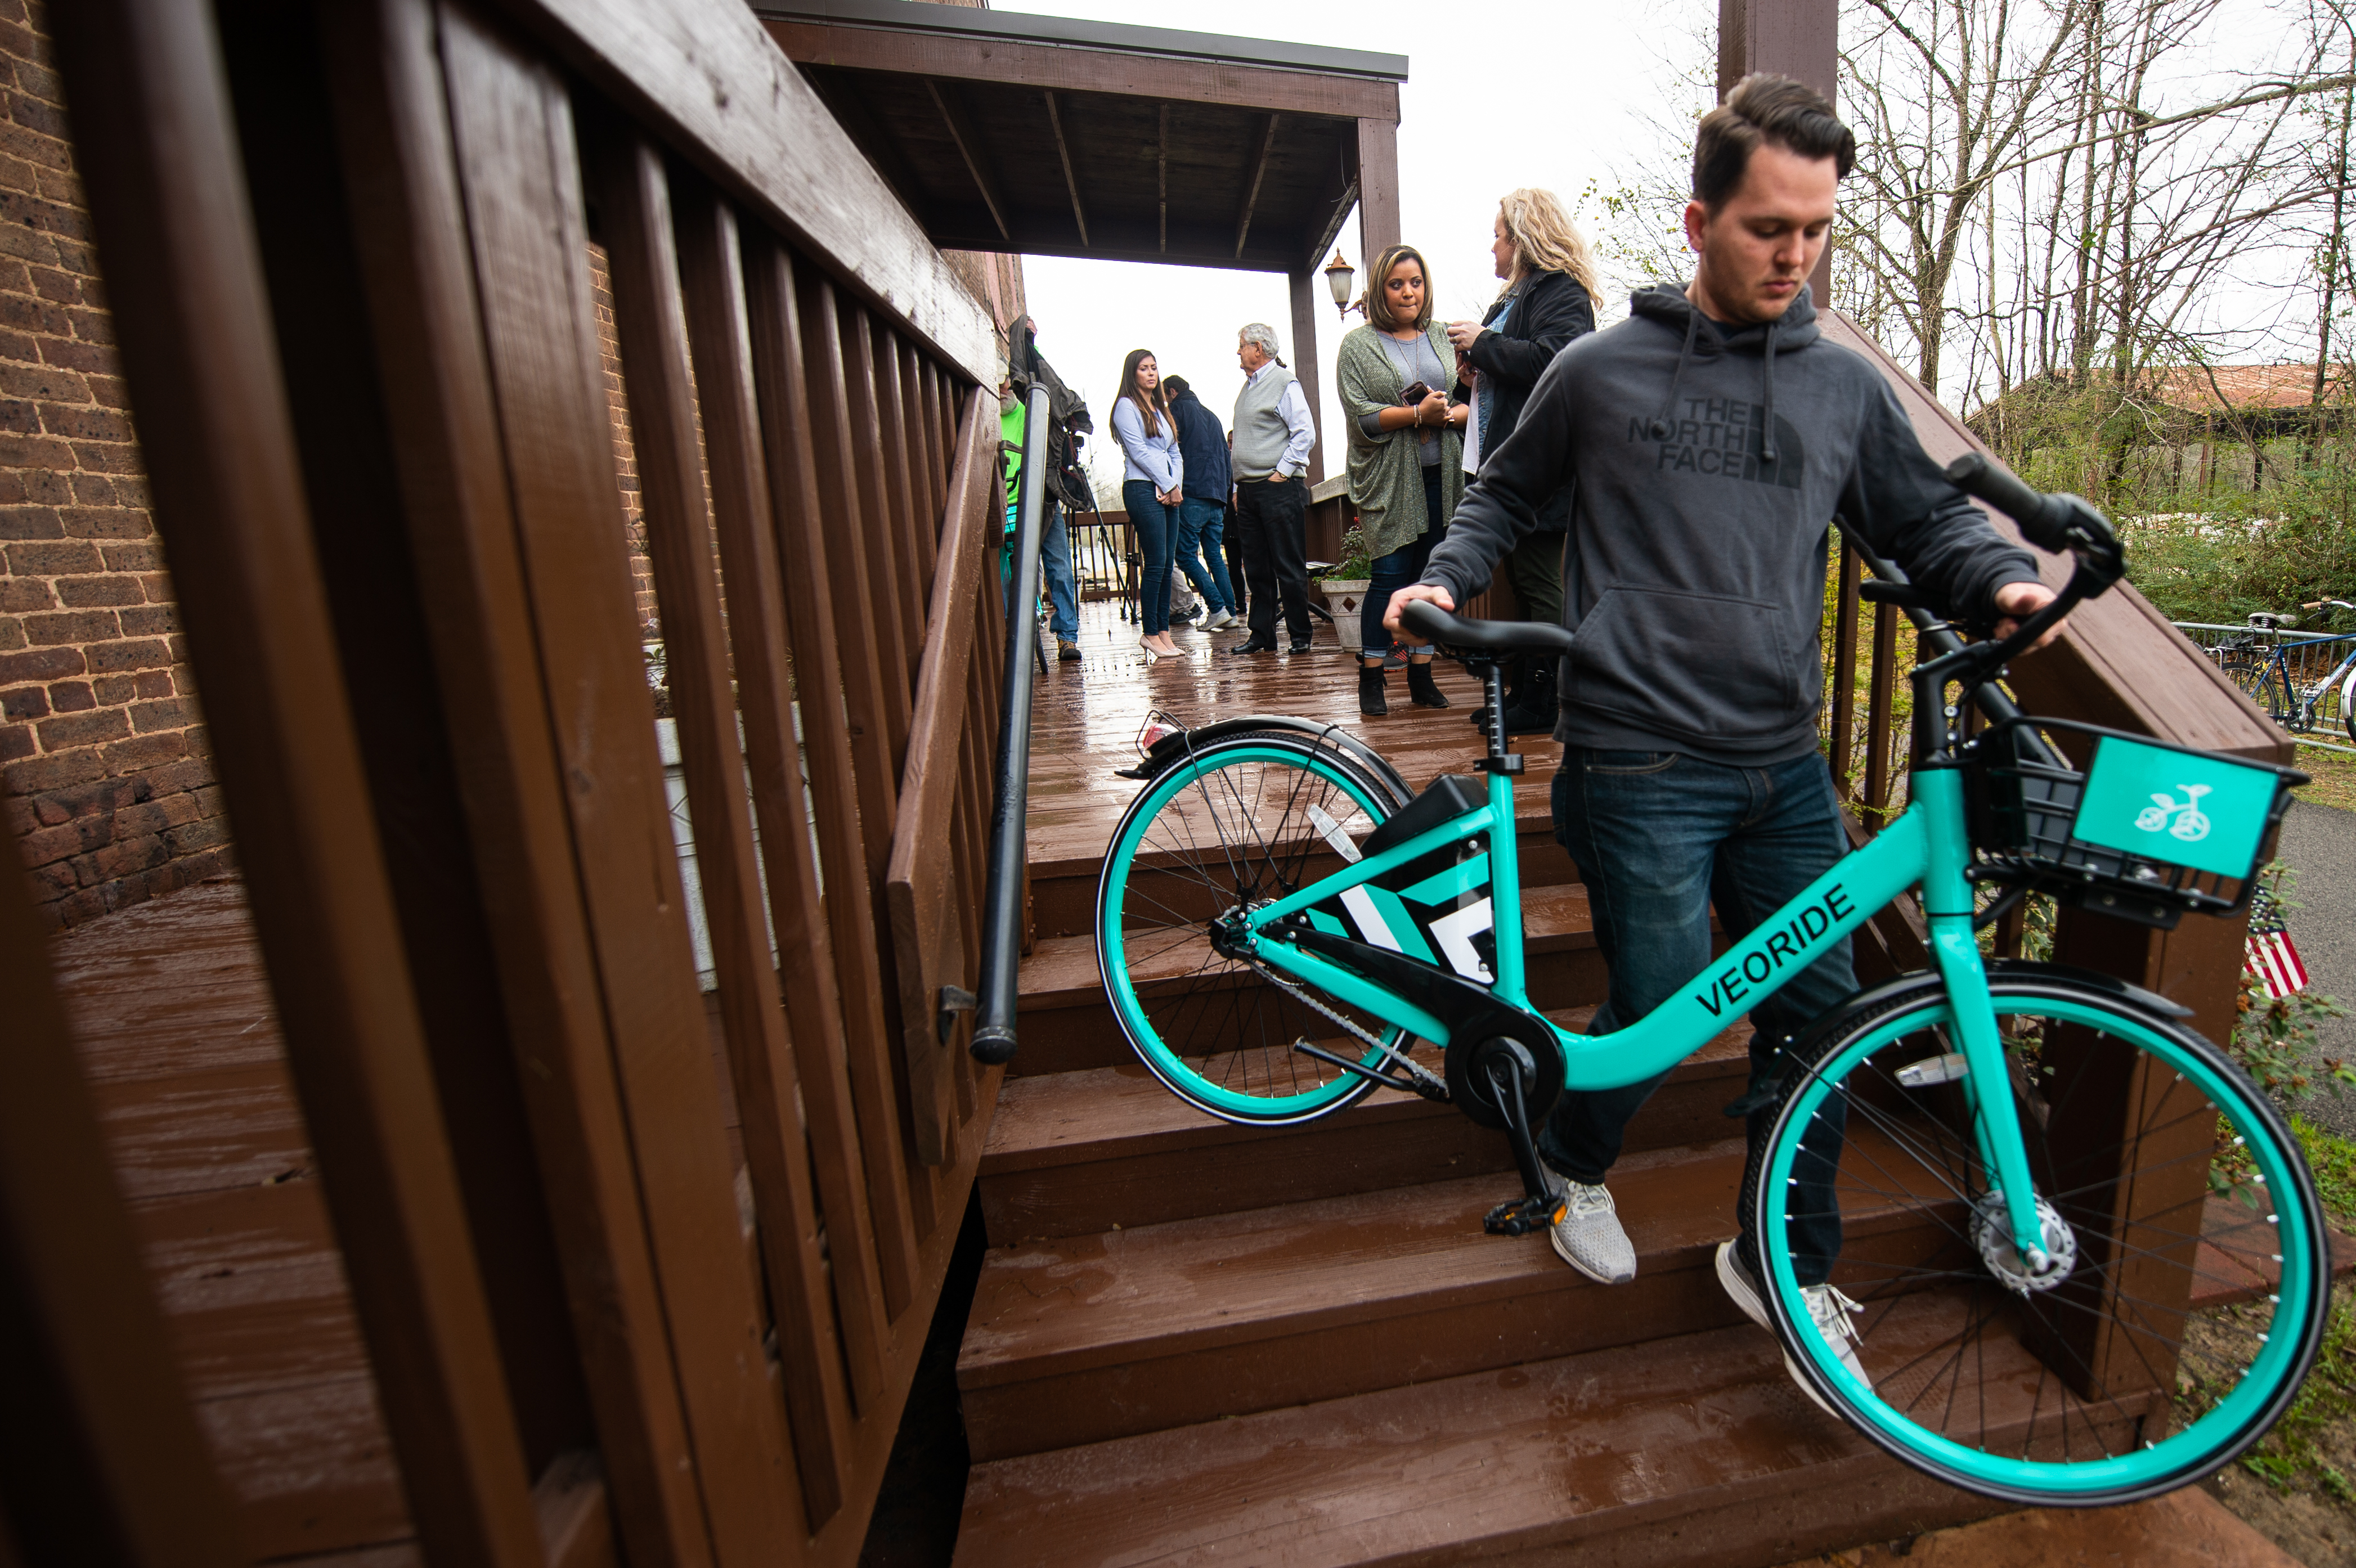 VeoRide Fleet Coordinator Trent Dickeson, pictured right, carries a VeoRide bicycle at the Jacksonville Train Depot during a ribbon cutting ceremony for the bike share program. (Matt Reynolds/JSU)